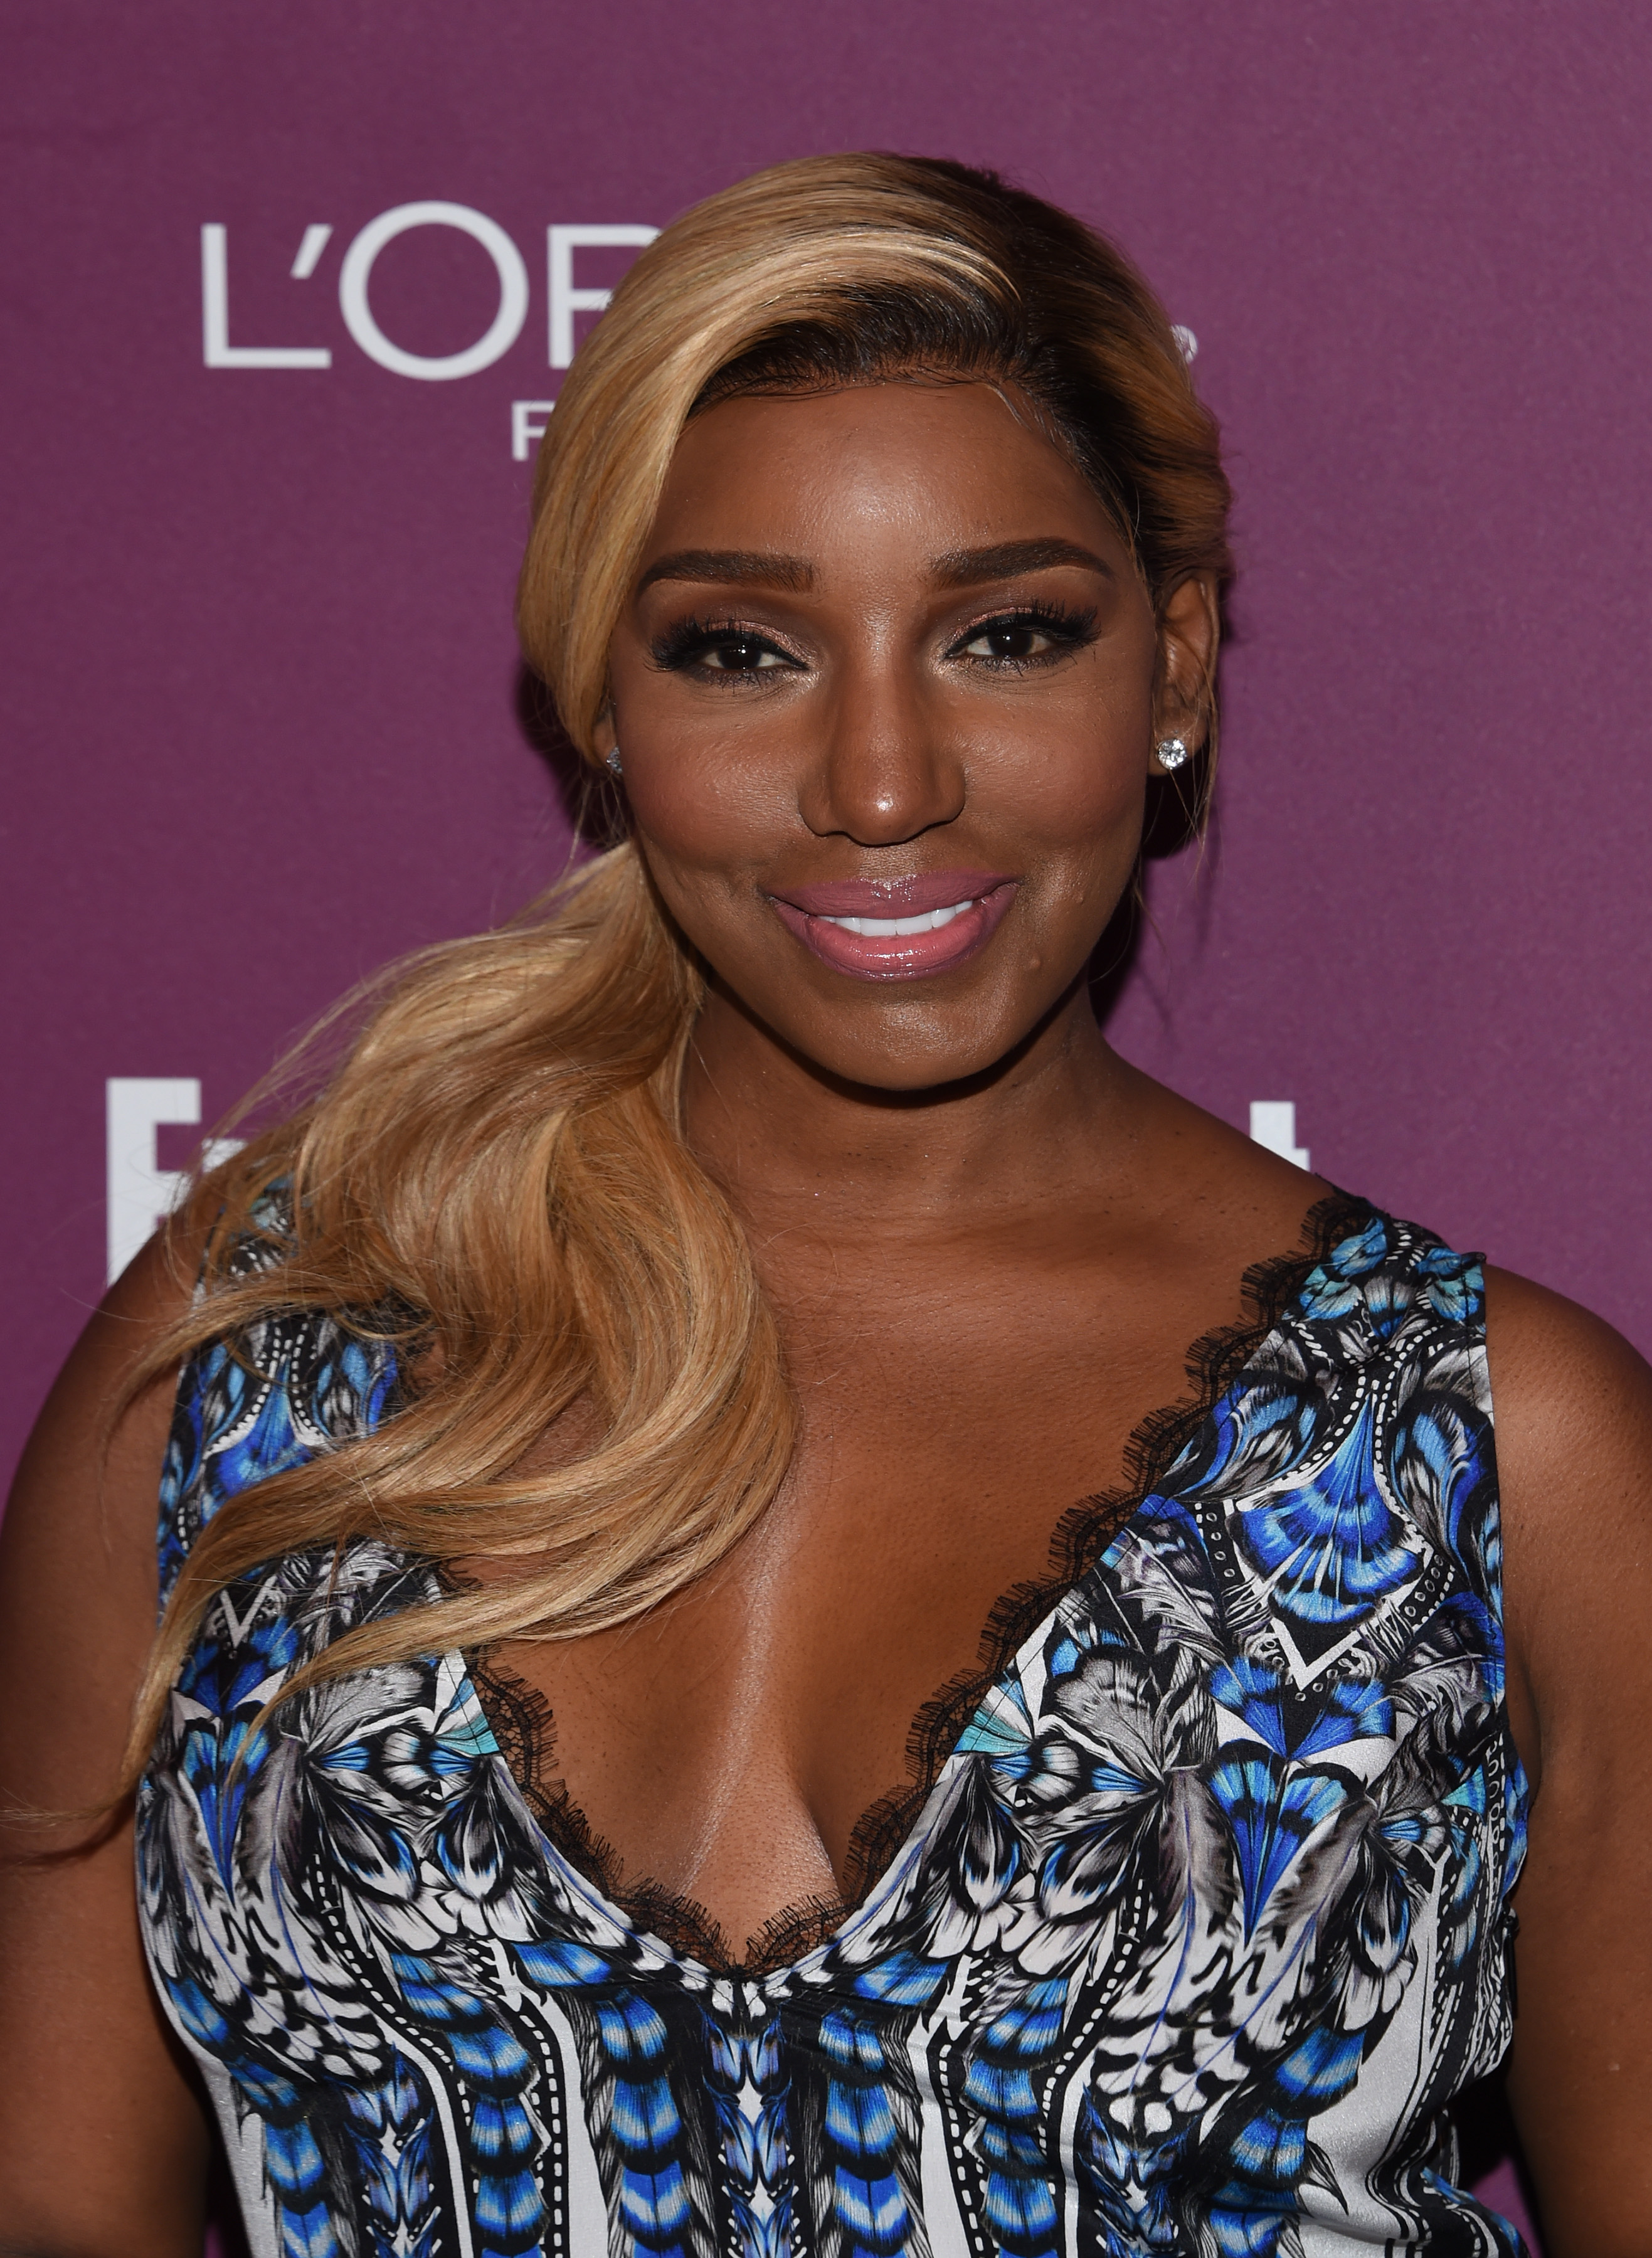 NeNe Leakes Offers 'LHHATL' Star Joseline Hernandez Some Real Advice About Reality TV